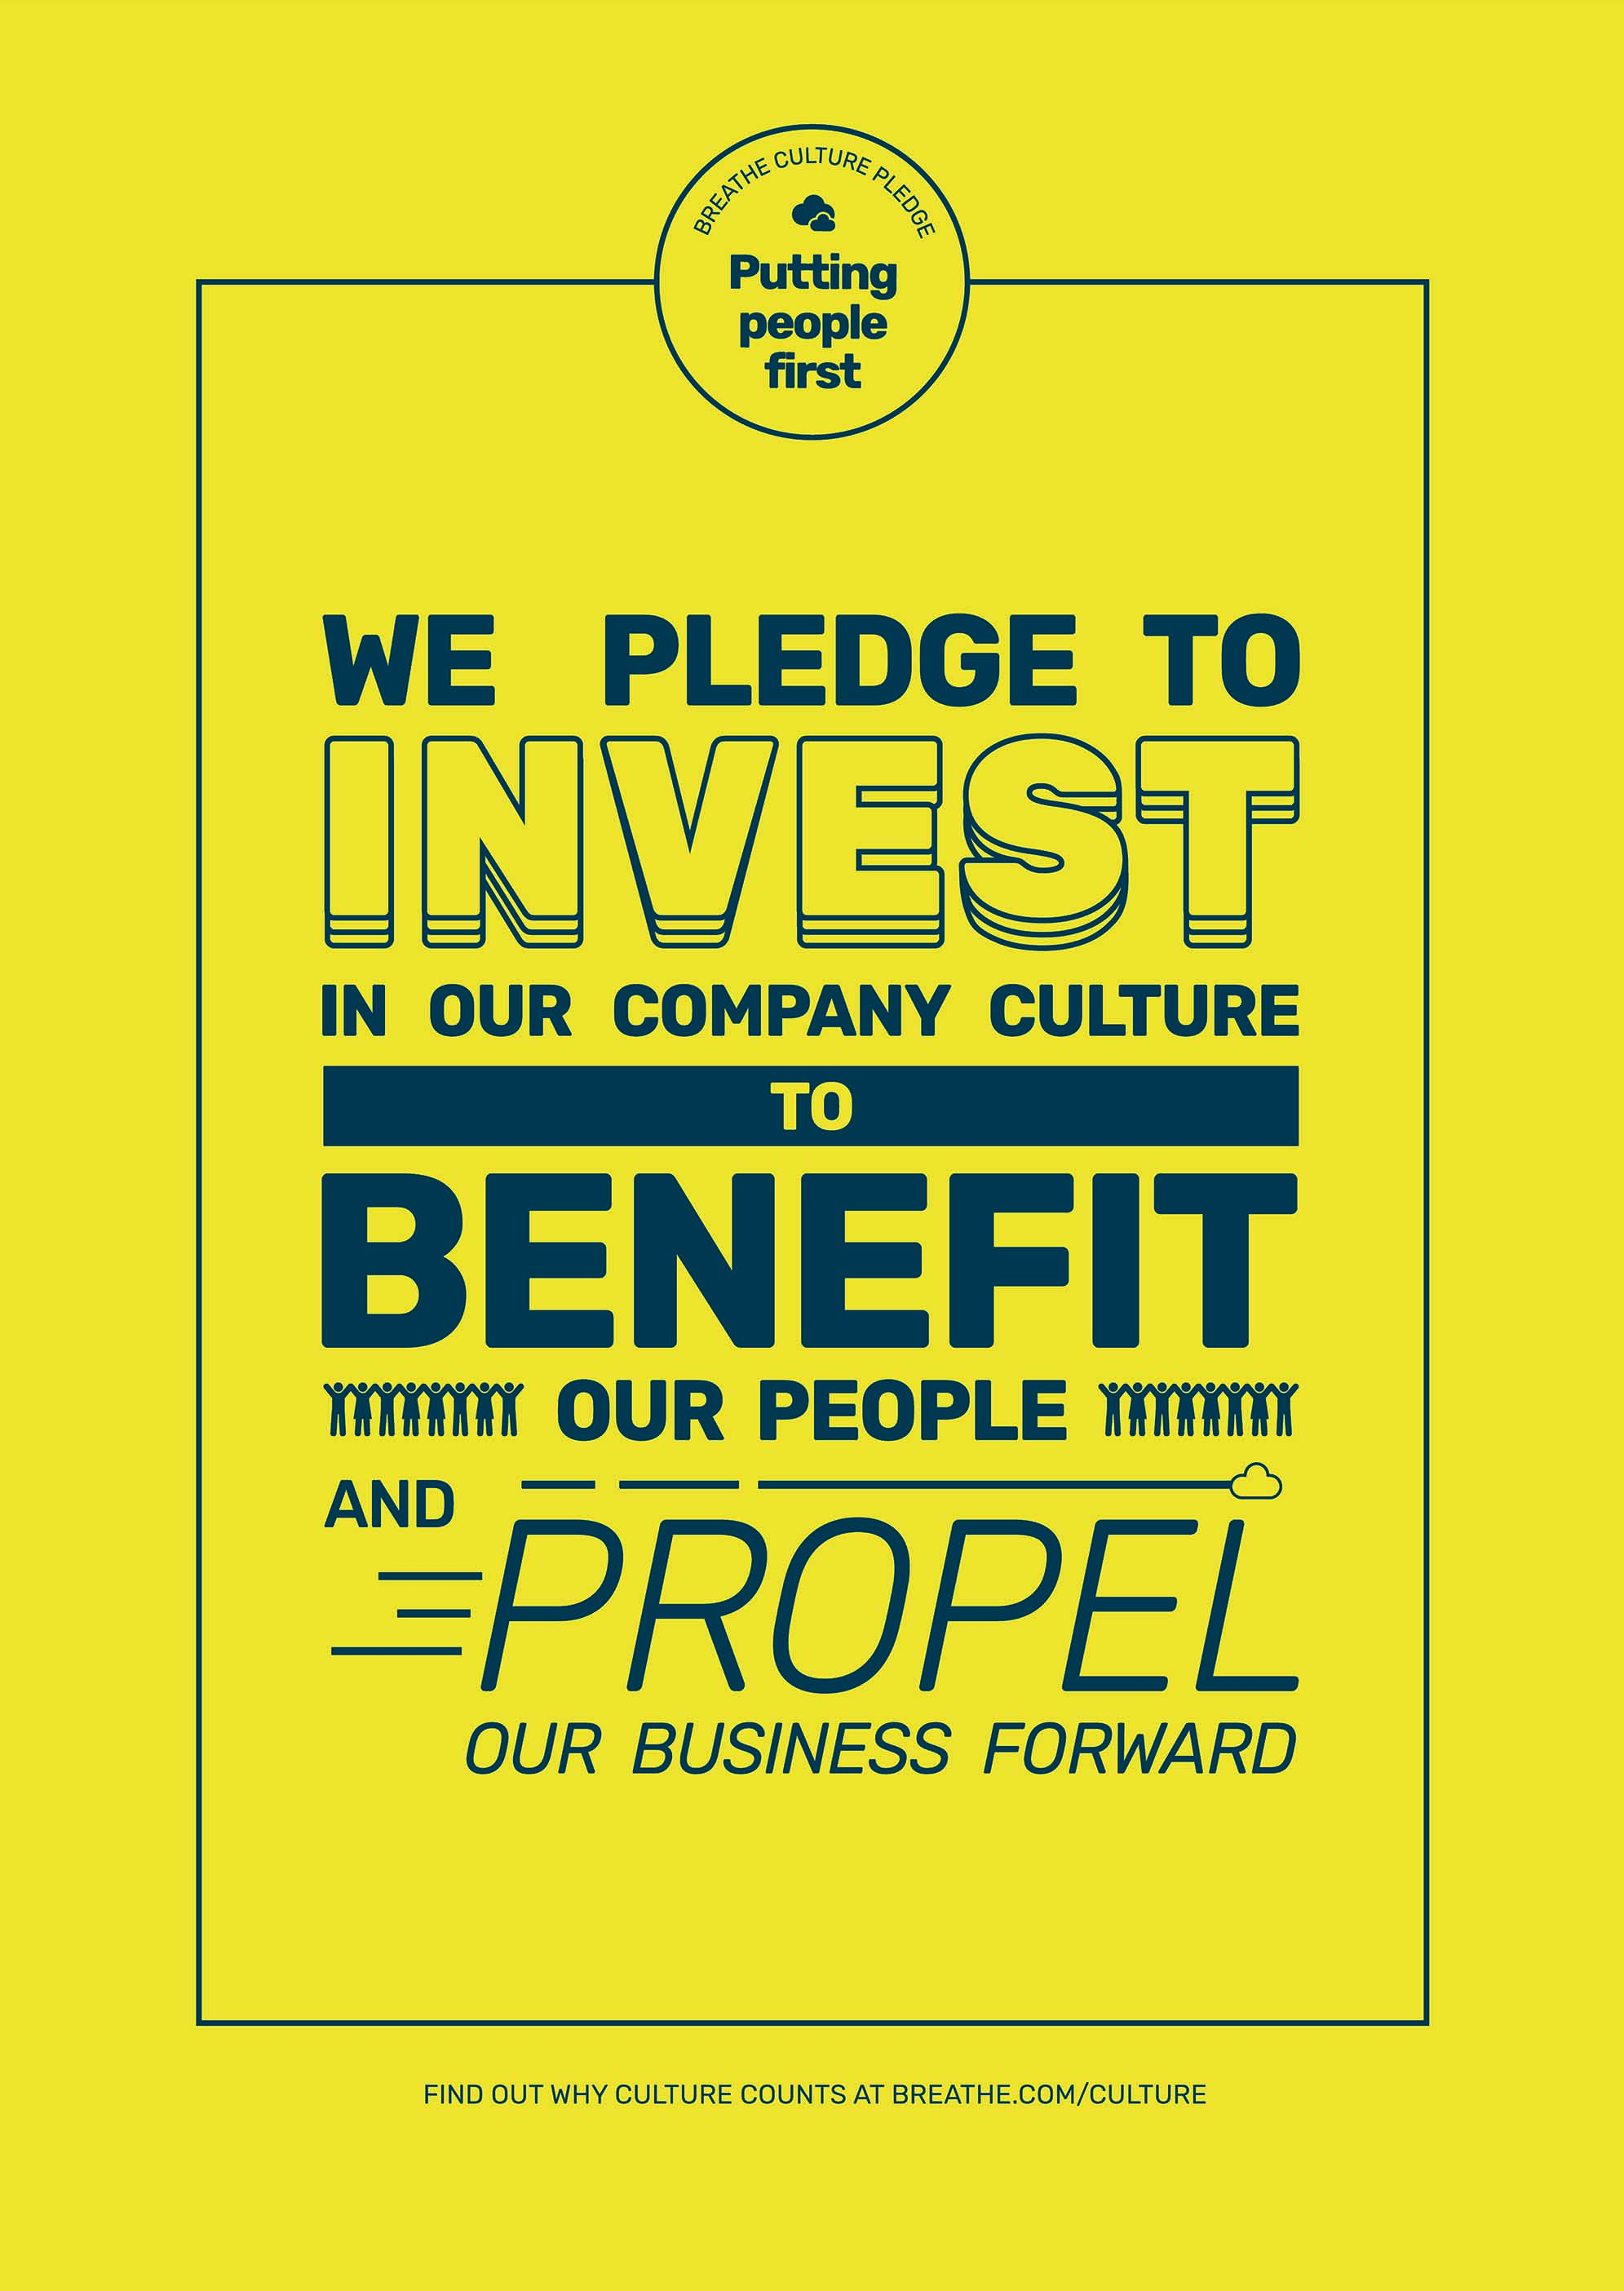 Breathe Culture Pledge_Poster 2 Yellow_Resized for web